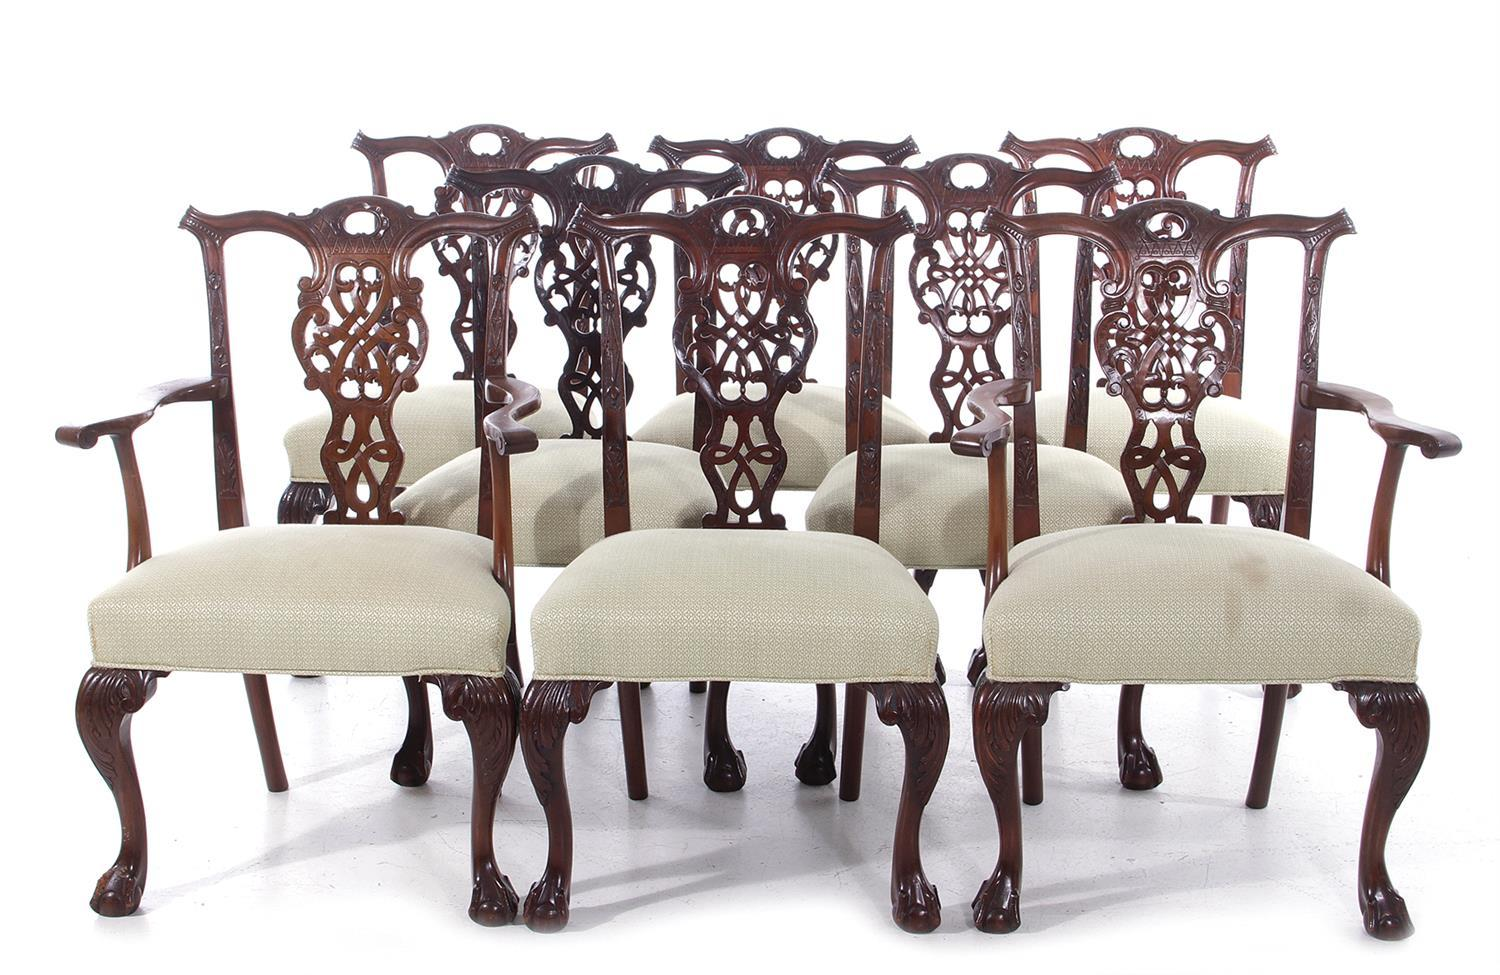 Chippendale style carved mahogany dining chairs (8pcs)